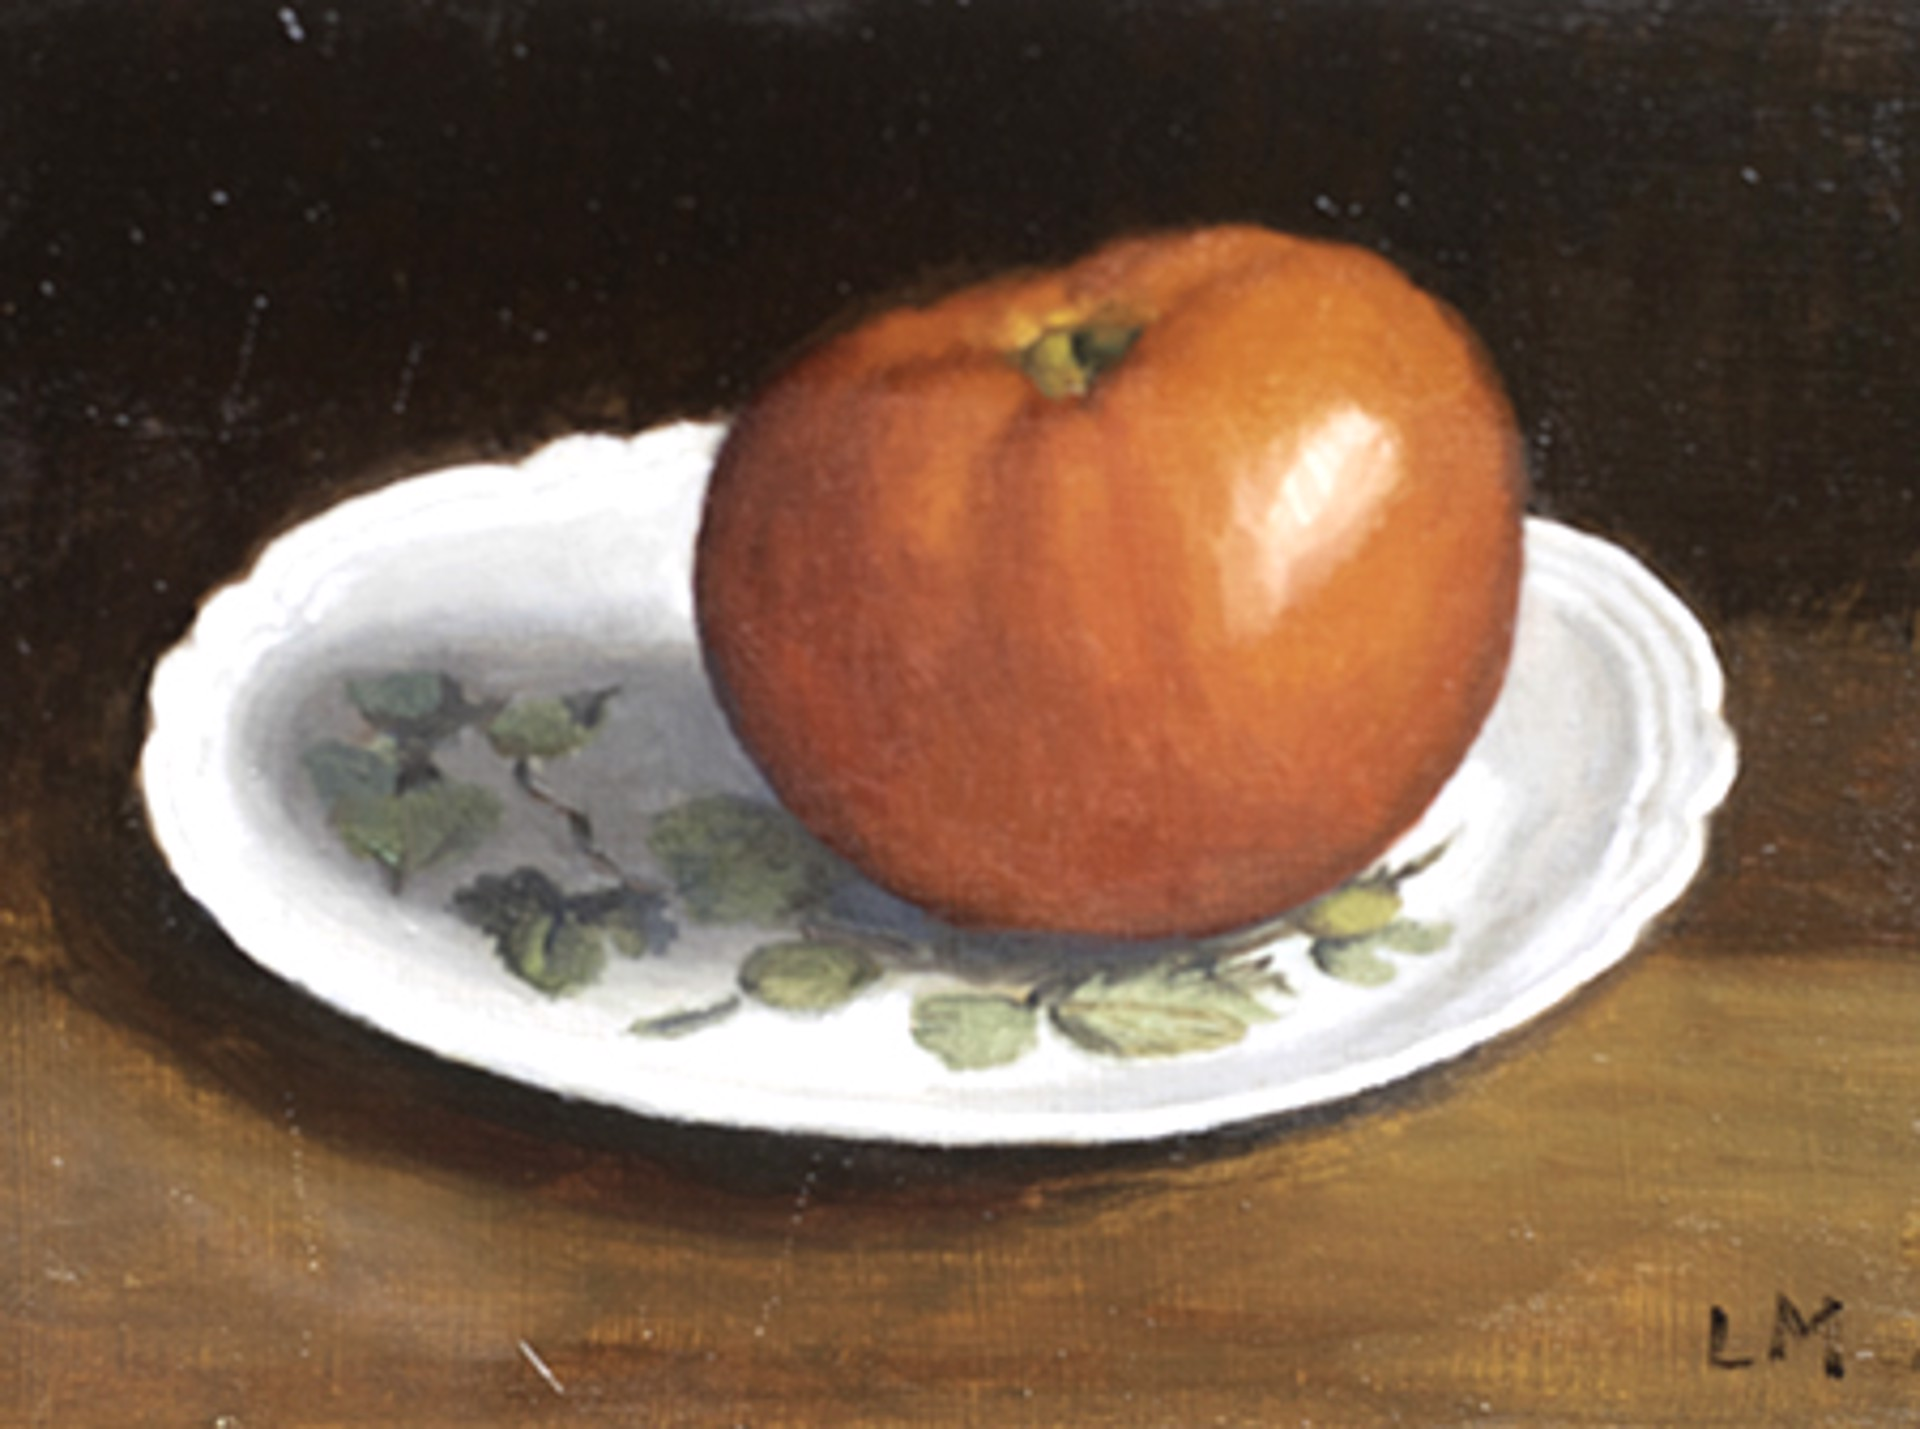 Tomato on Limoges Plate by Laura Murphey